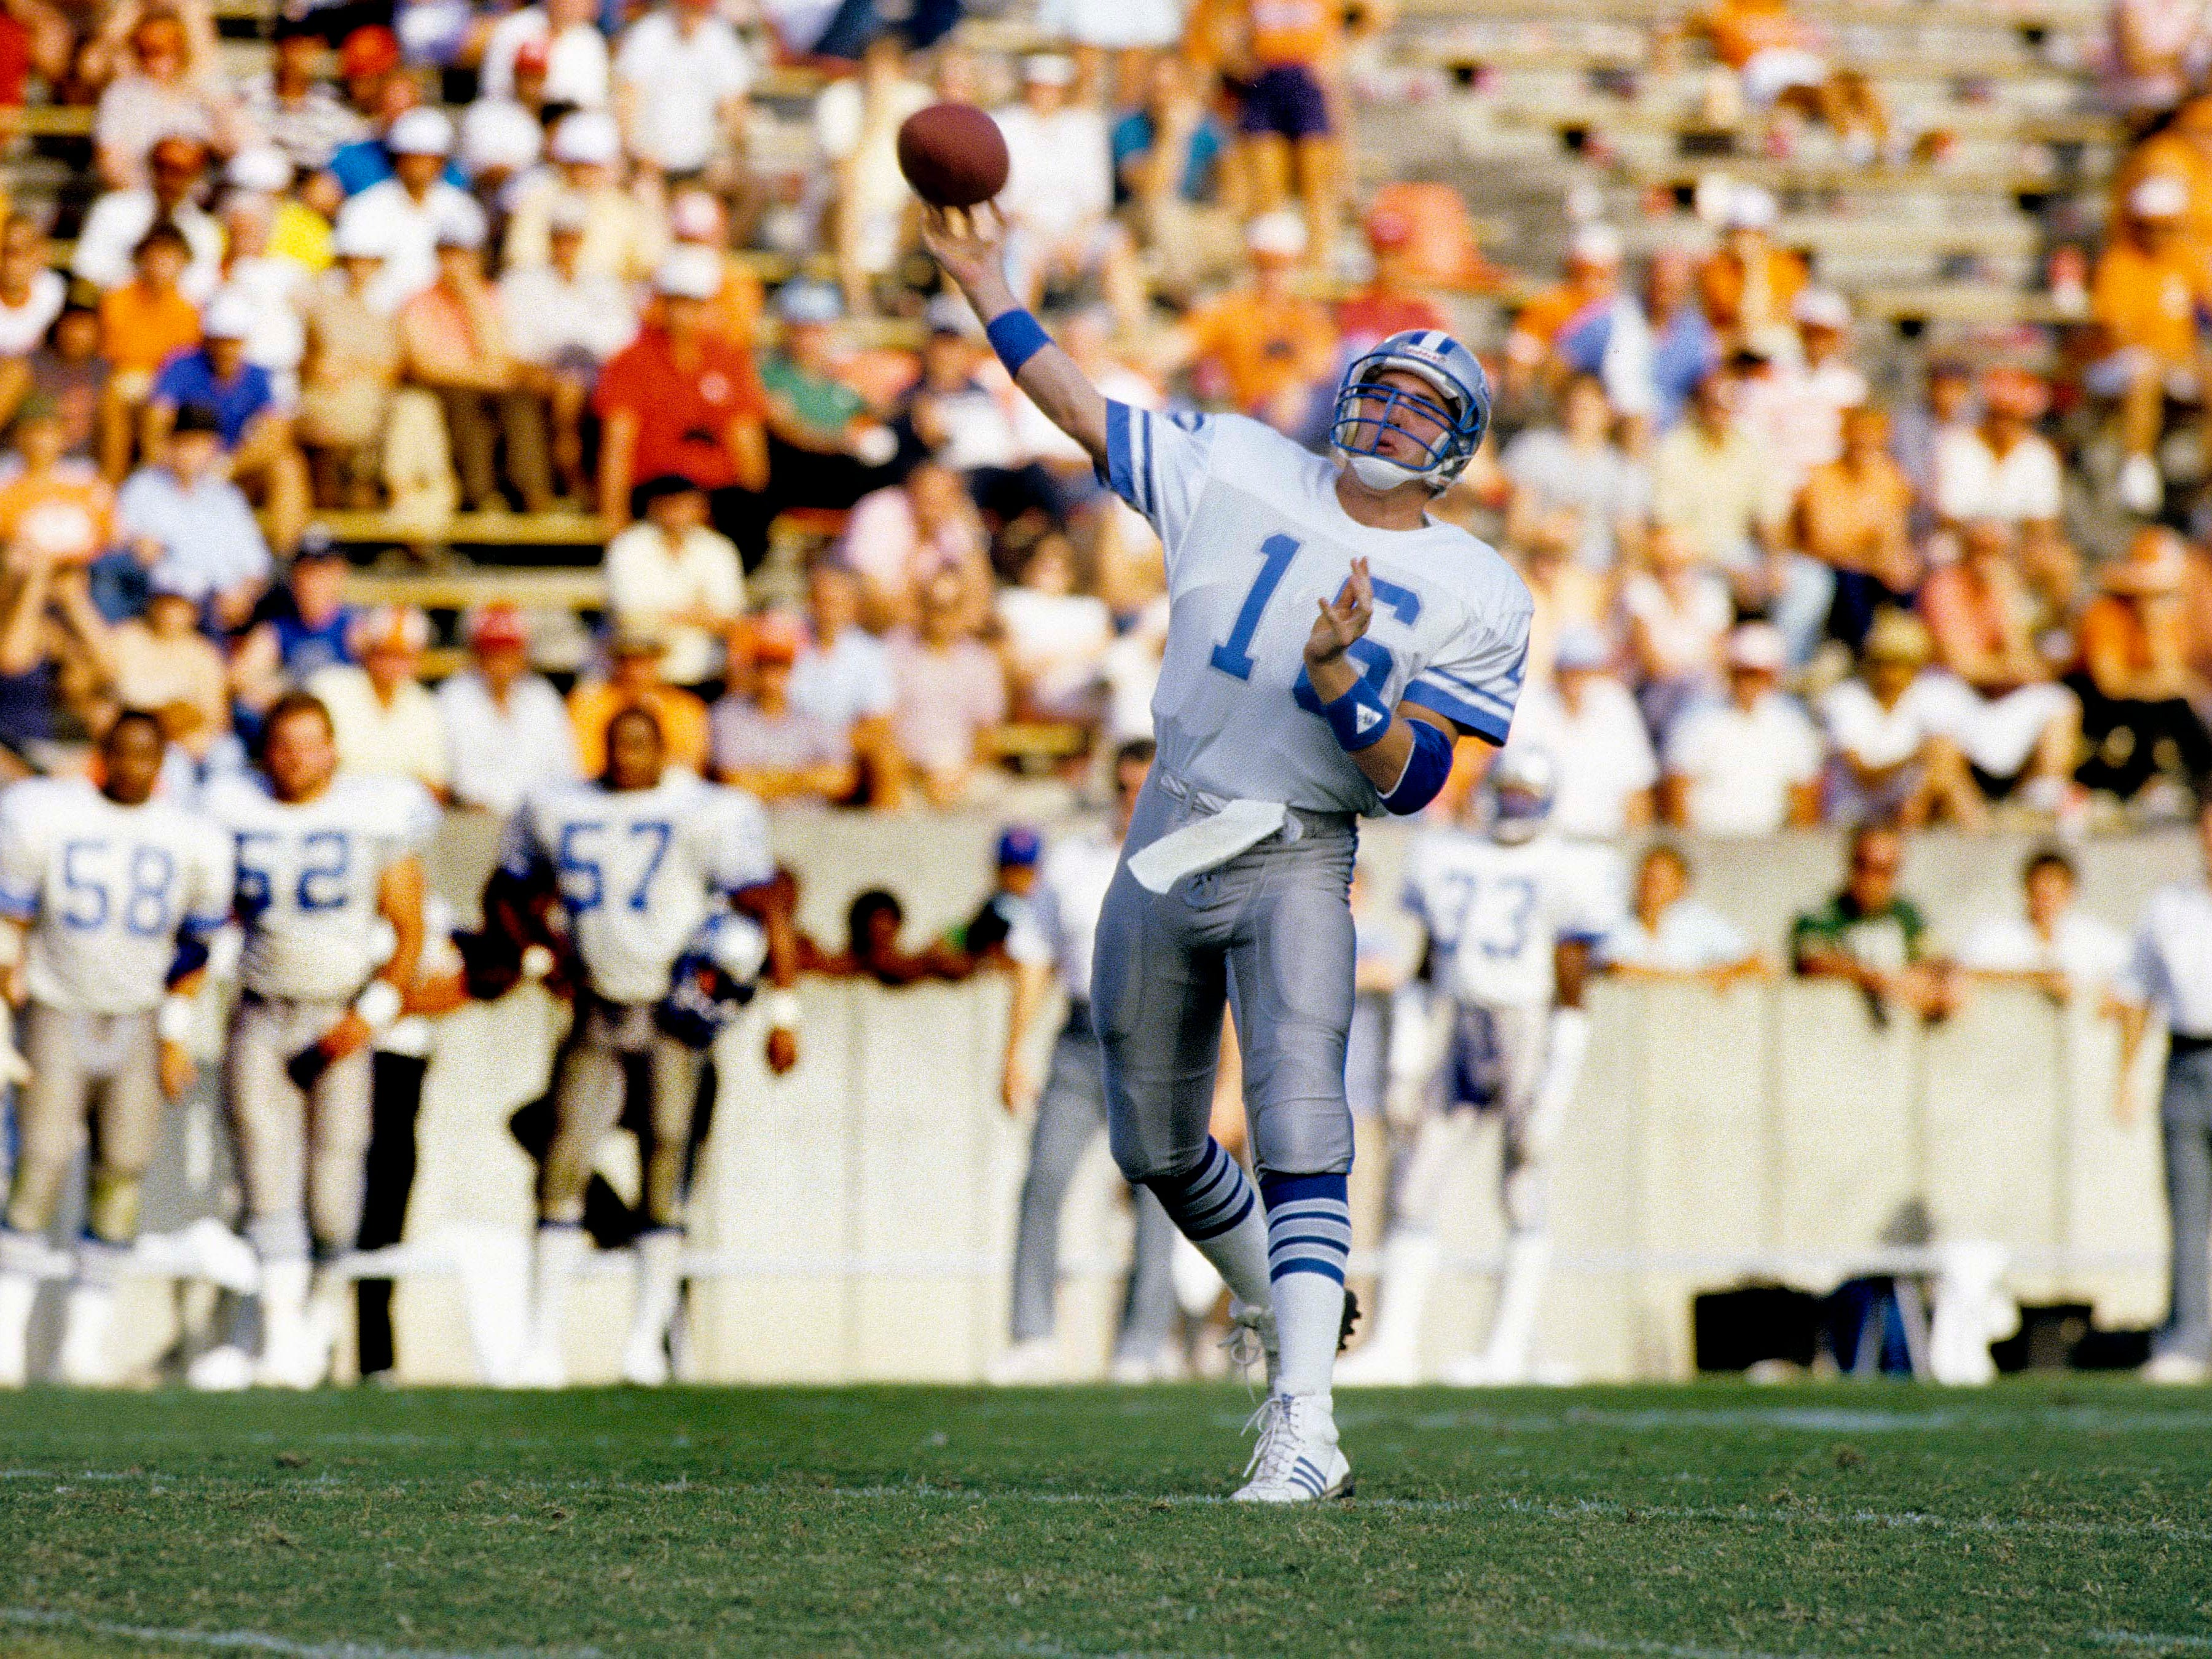 Detroit Lions quarterback Chuck Long (16) throws a pass against the Tampa Bay Buccaneers at Tampa Stadium during the 1986 season. Long, a former Iowa Hawkeye, was the 12th ovearll pick by the Detroit Lions in the 1986 NFL Draft.